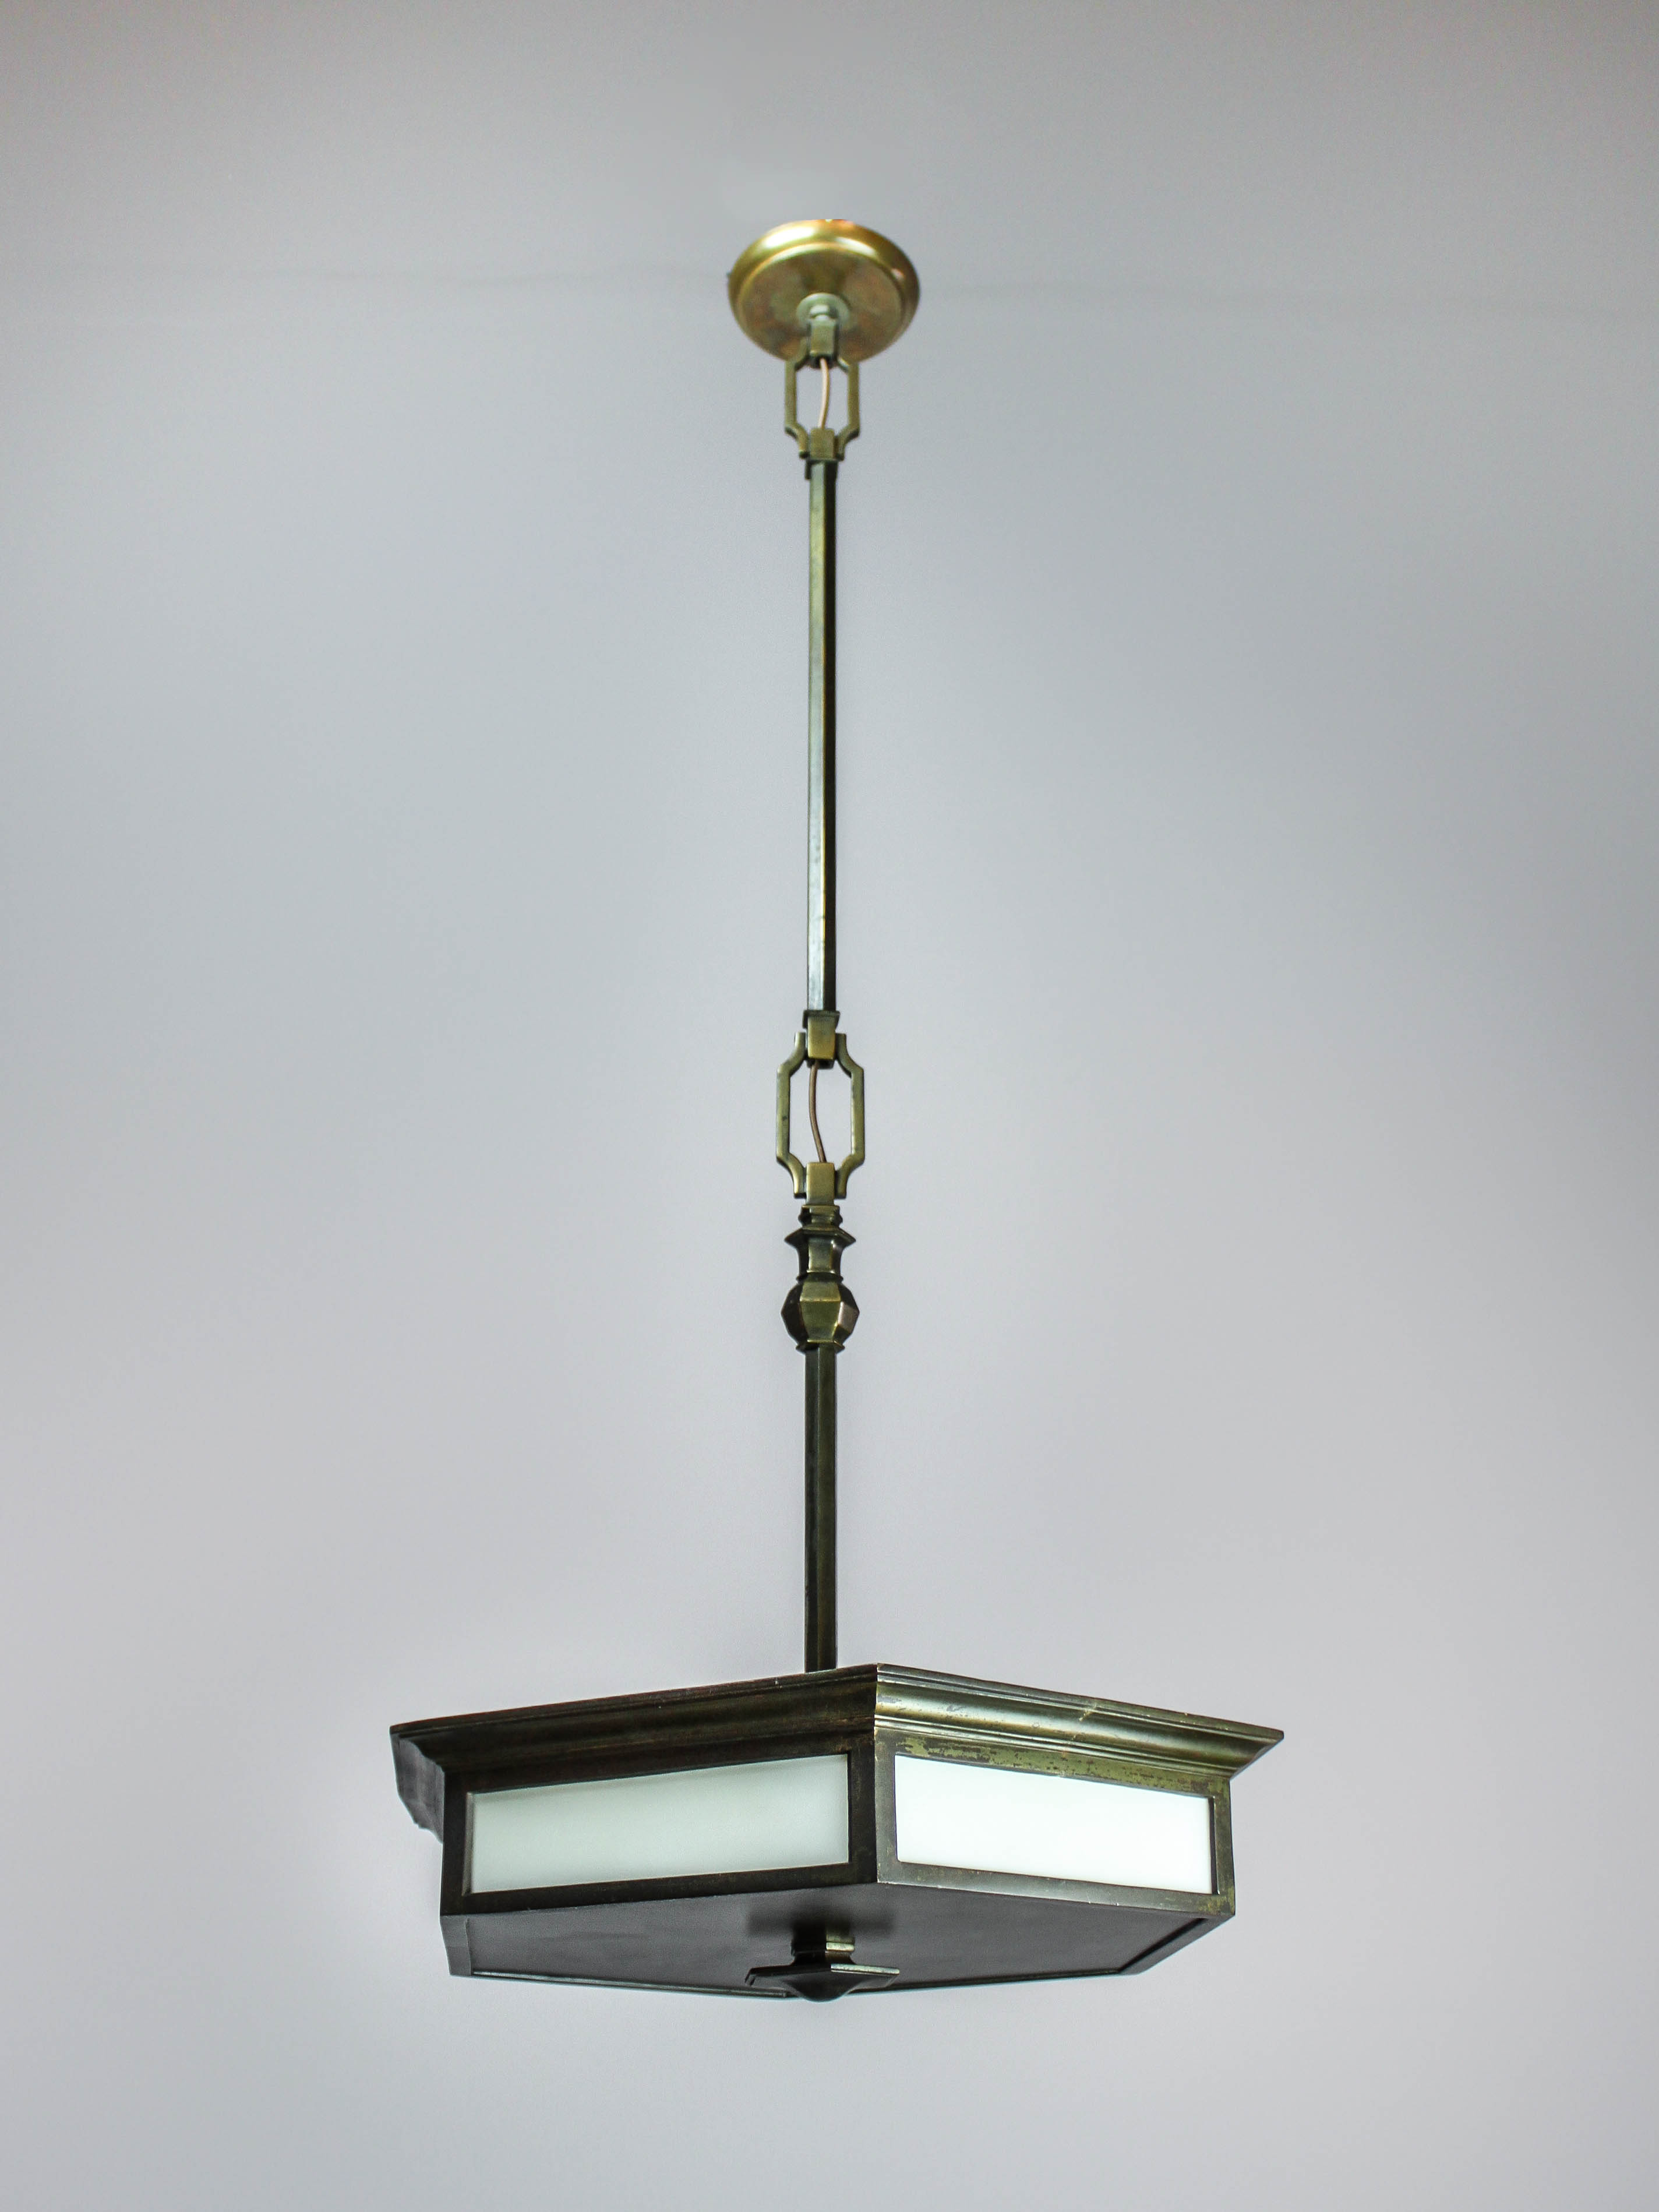 Tiffany studios pendant light 3 light